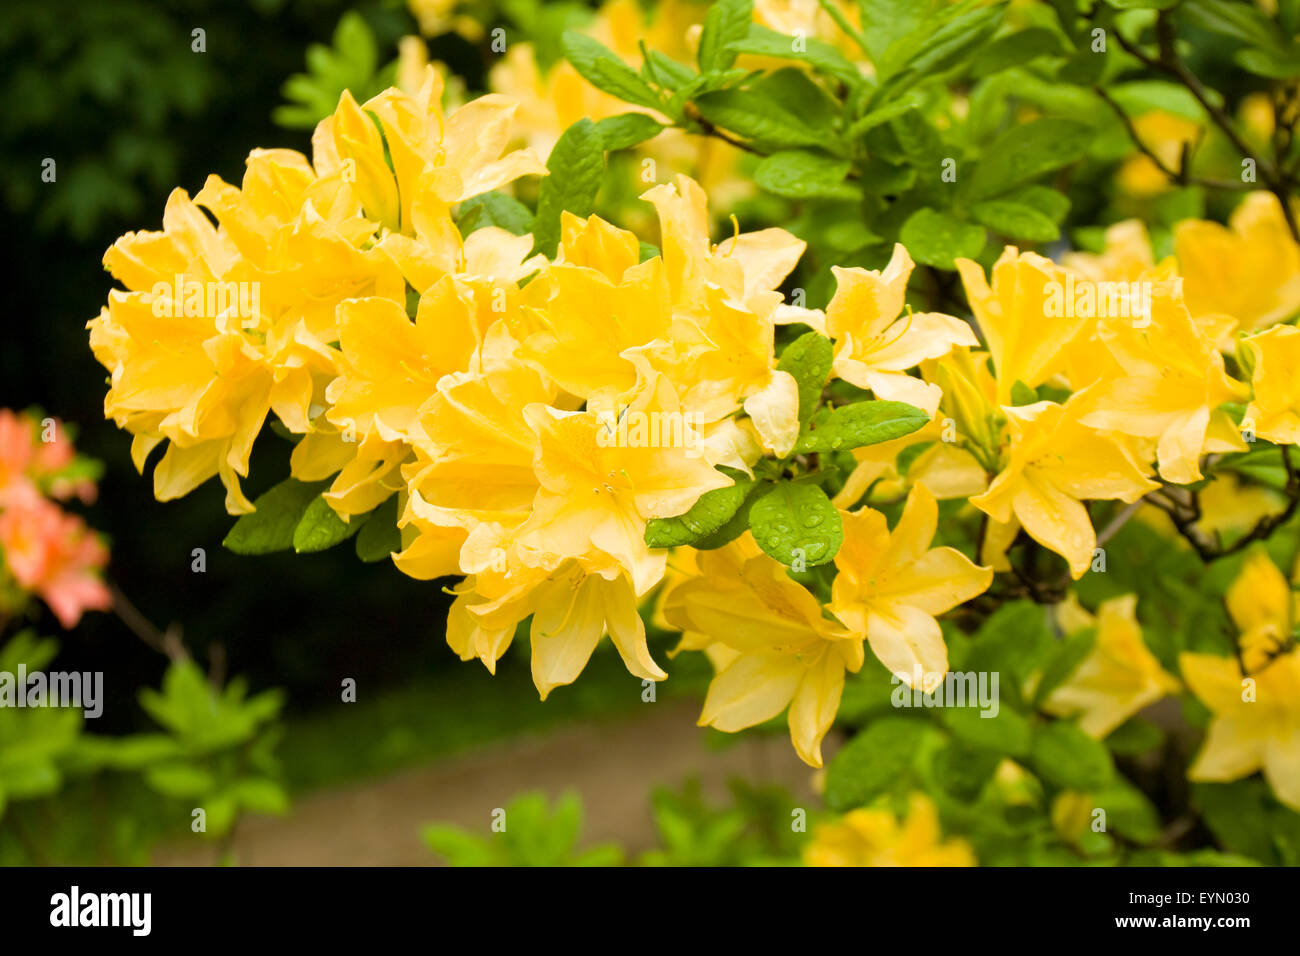 Branch Of Tropical Rhododendron Plant With Yellow Flowers Stock